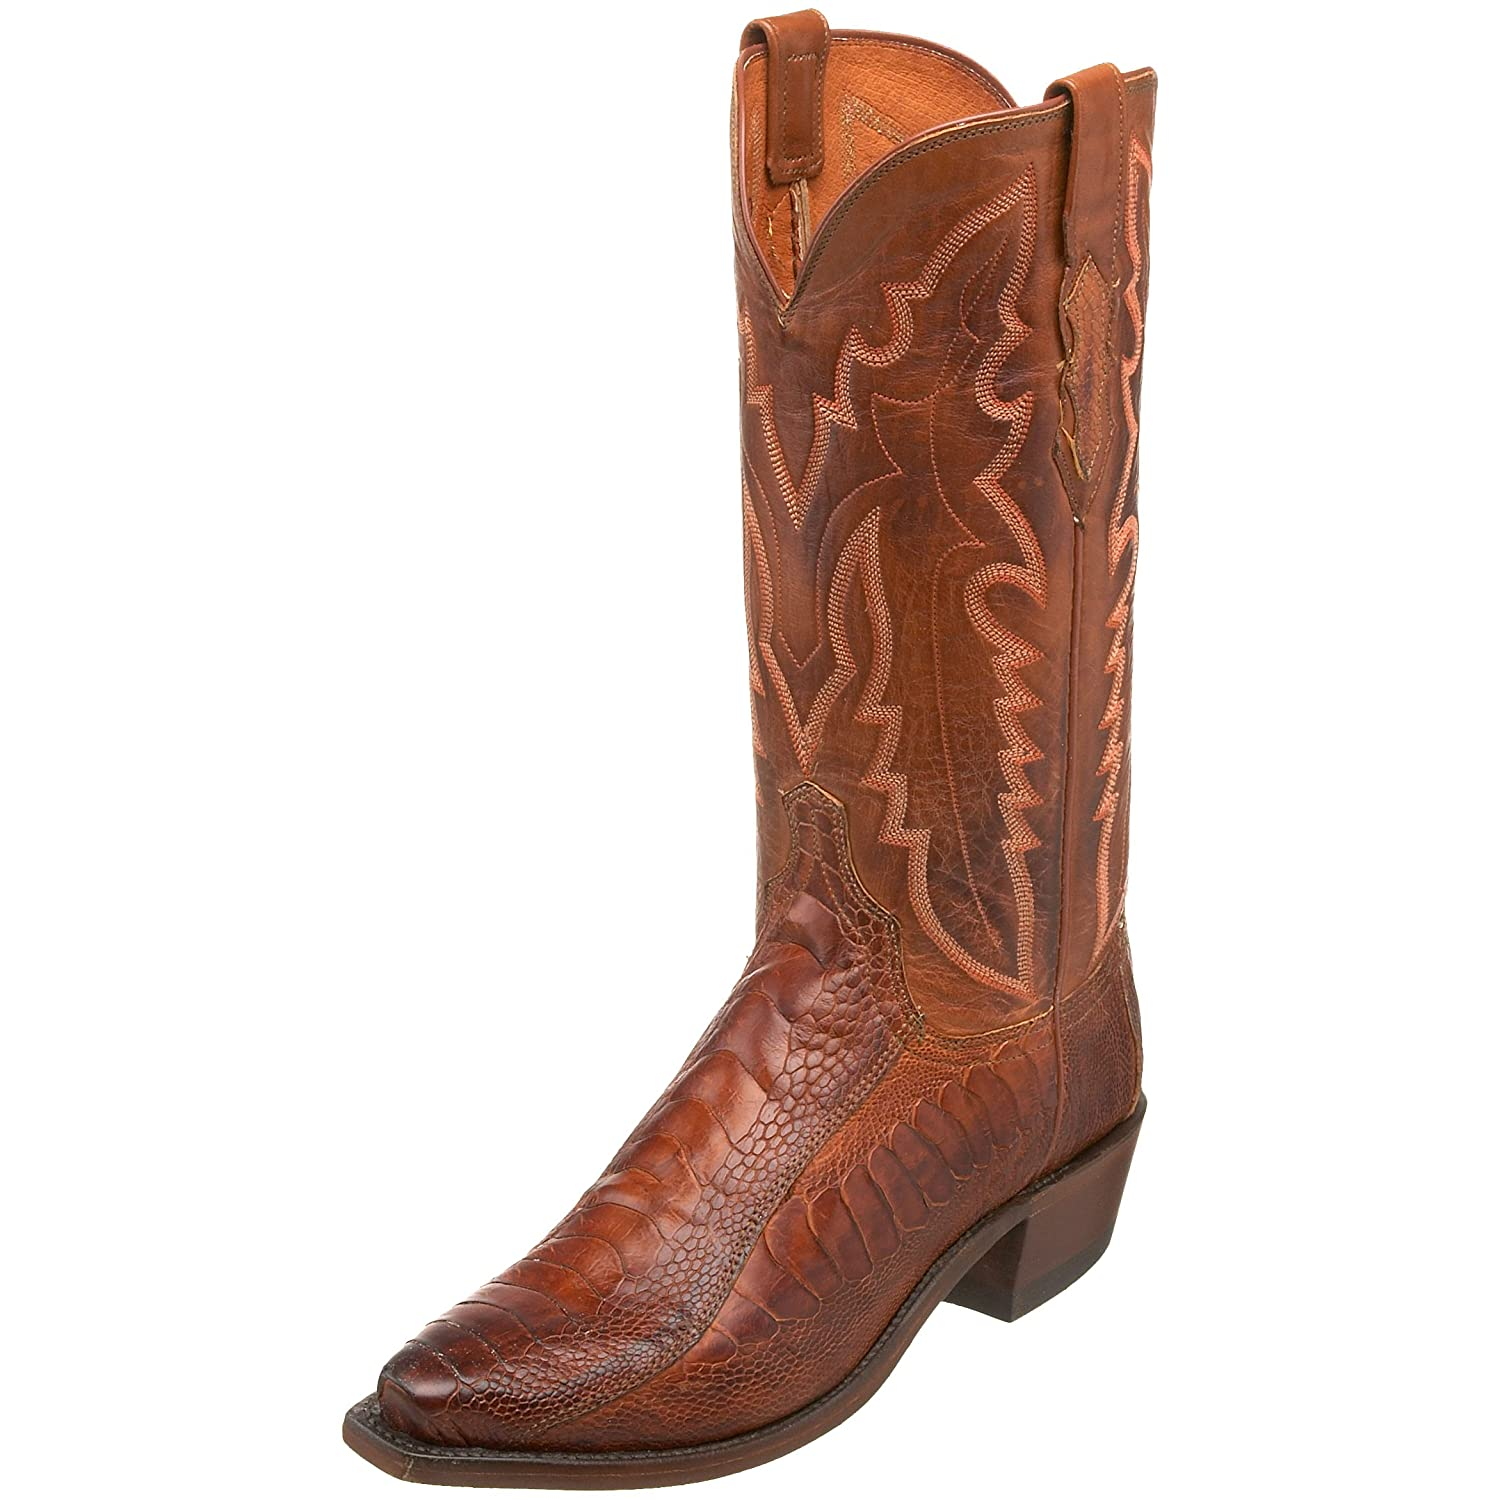 708e9ae8155 1883 by Lucchese Men's N1121.54 Western Boot